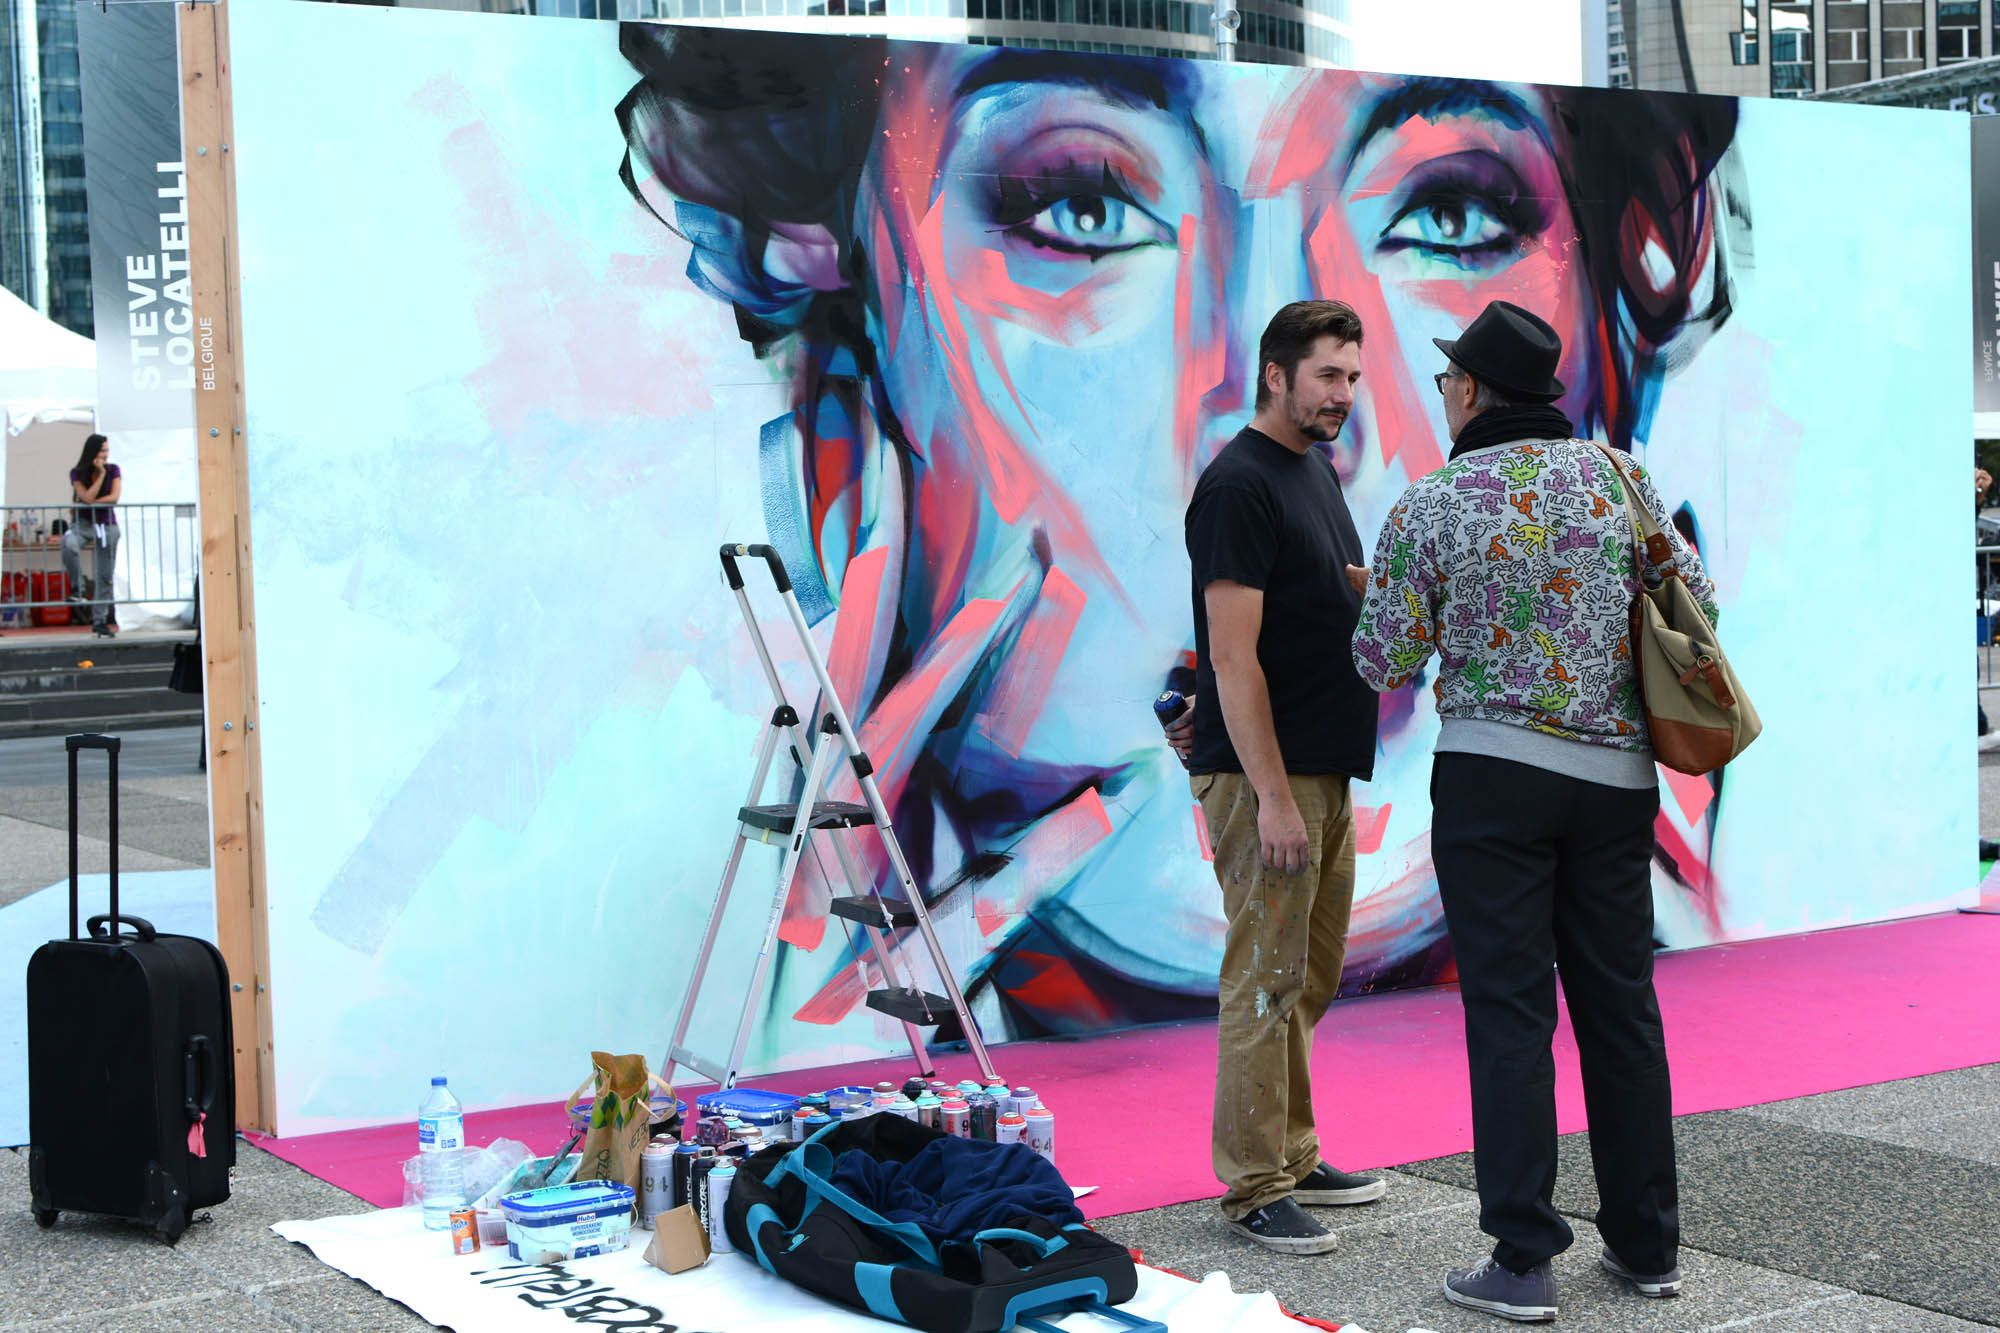 Portfolio of Steve Locatelli at Undergroud Effect 2 last september #streetart